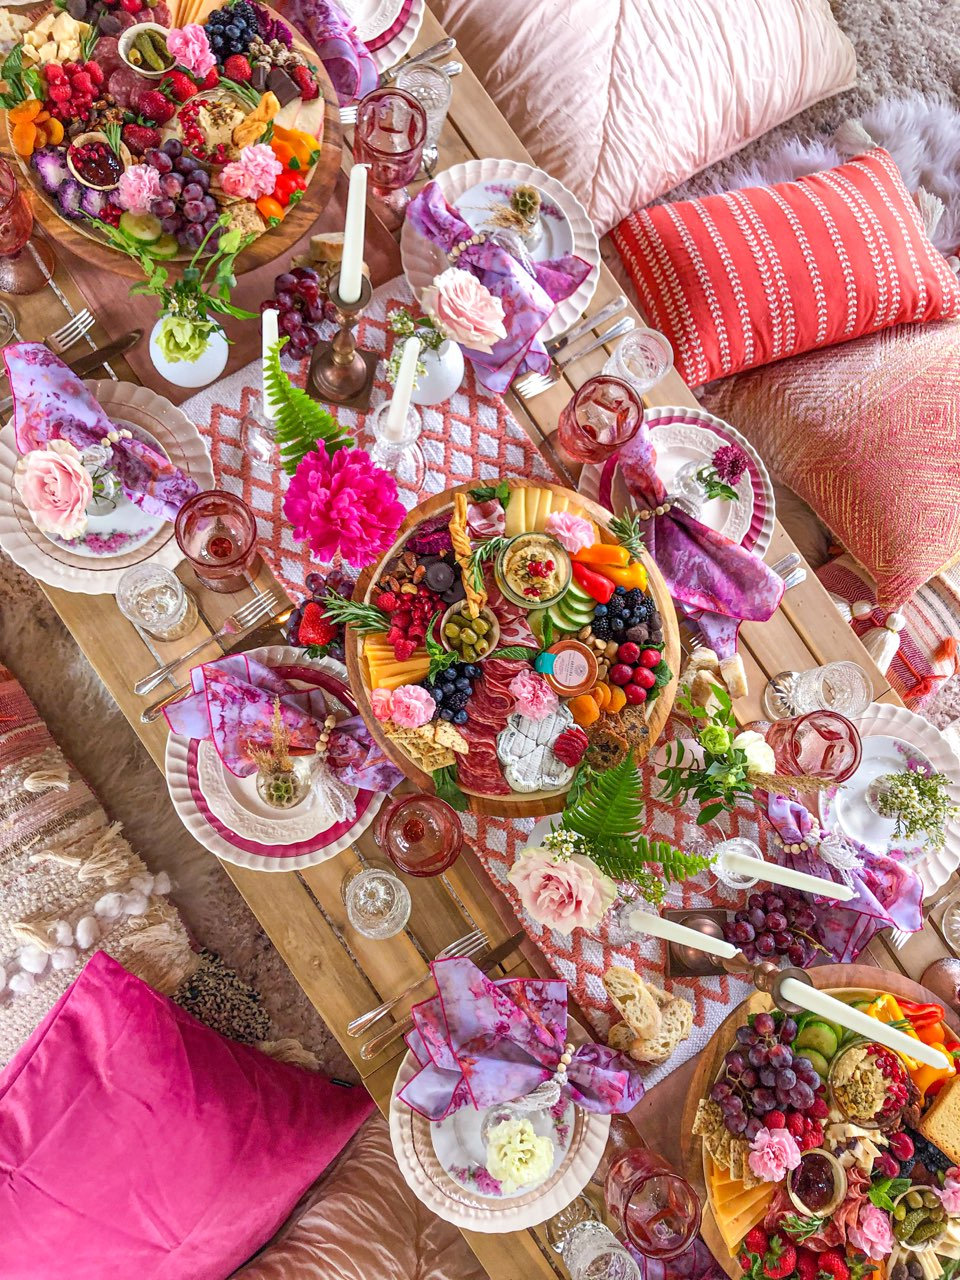 Do you want to start a picnic business?